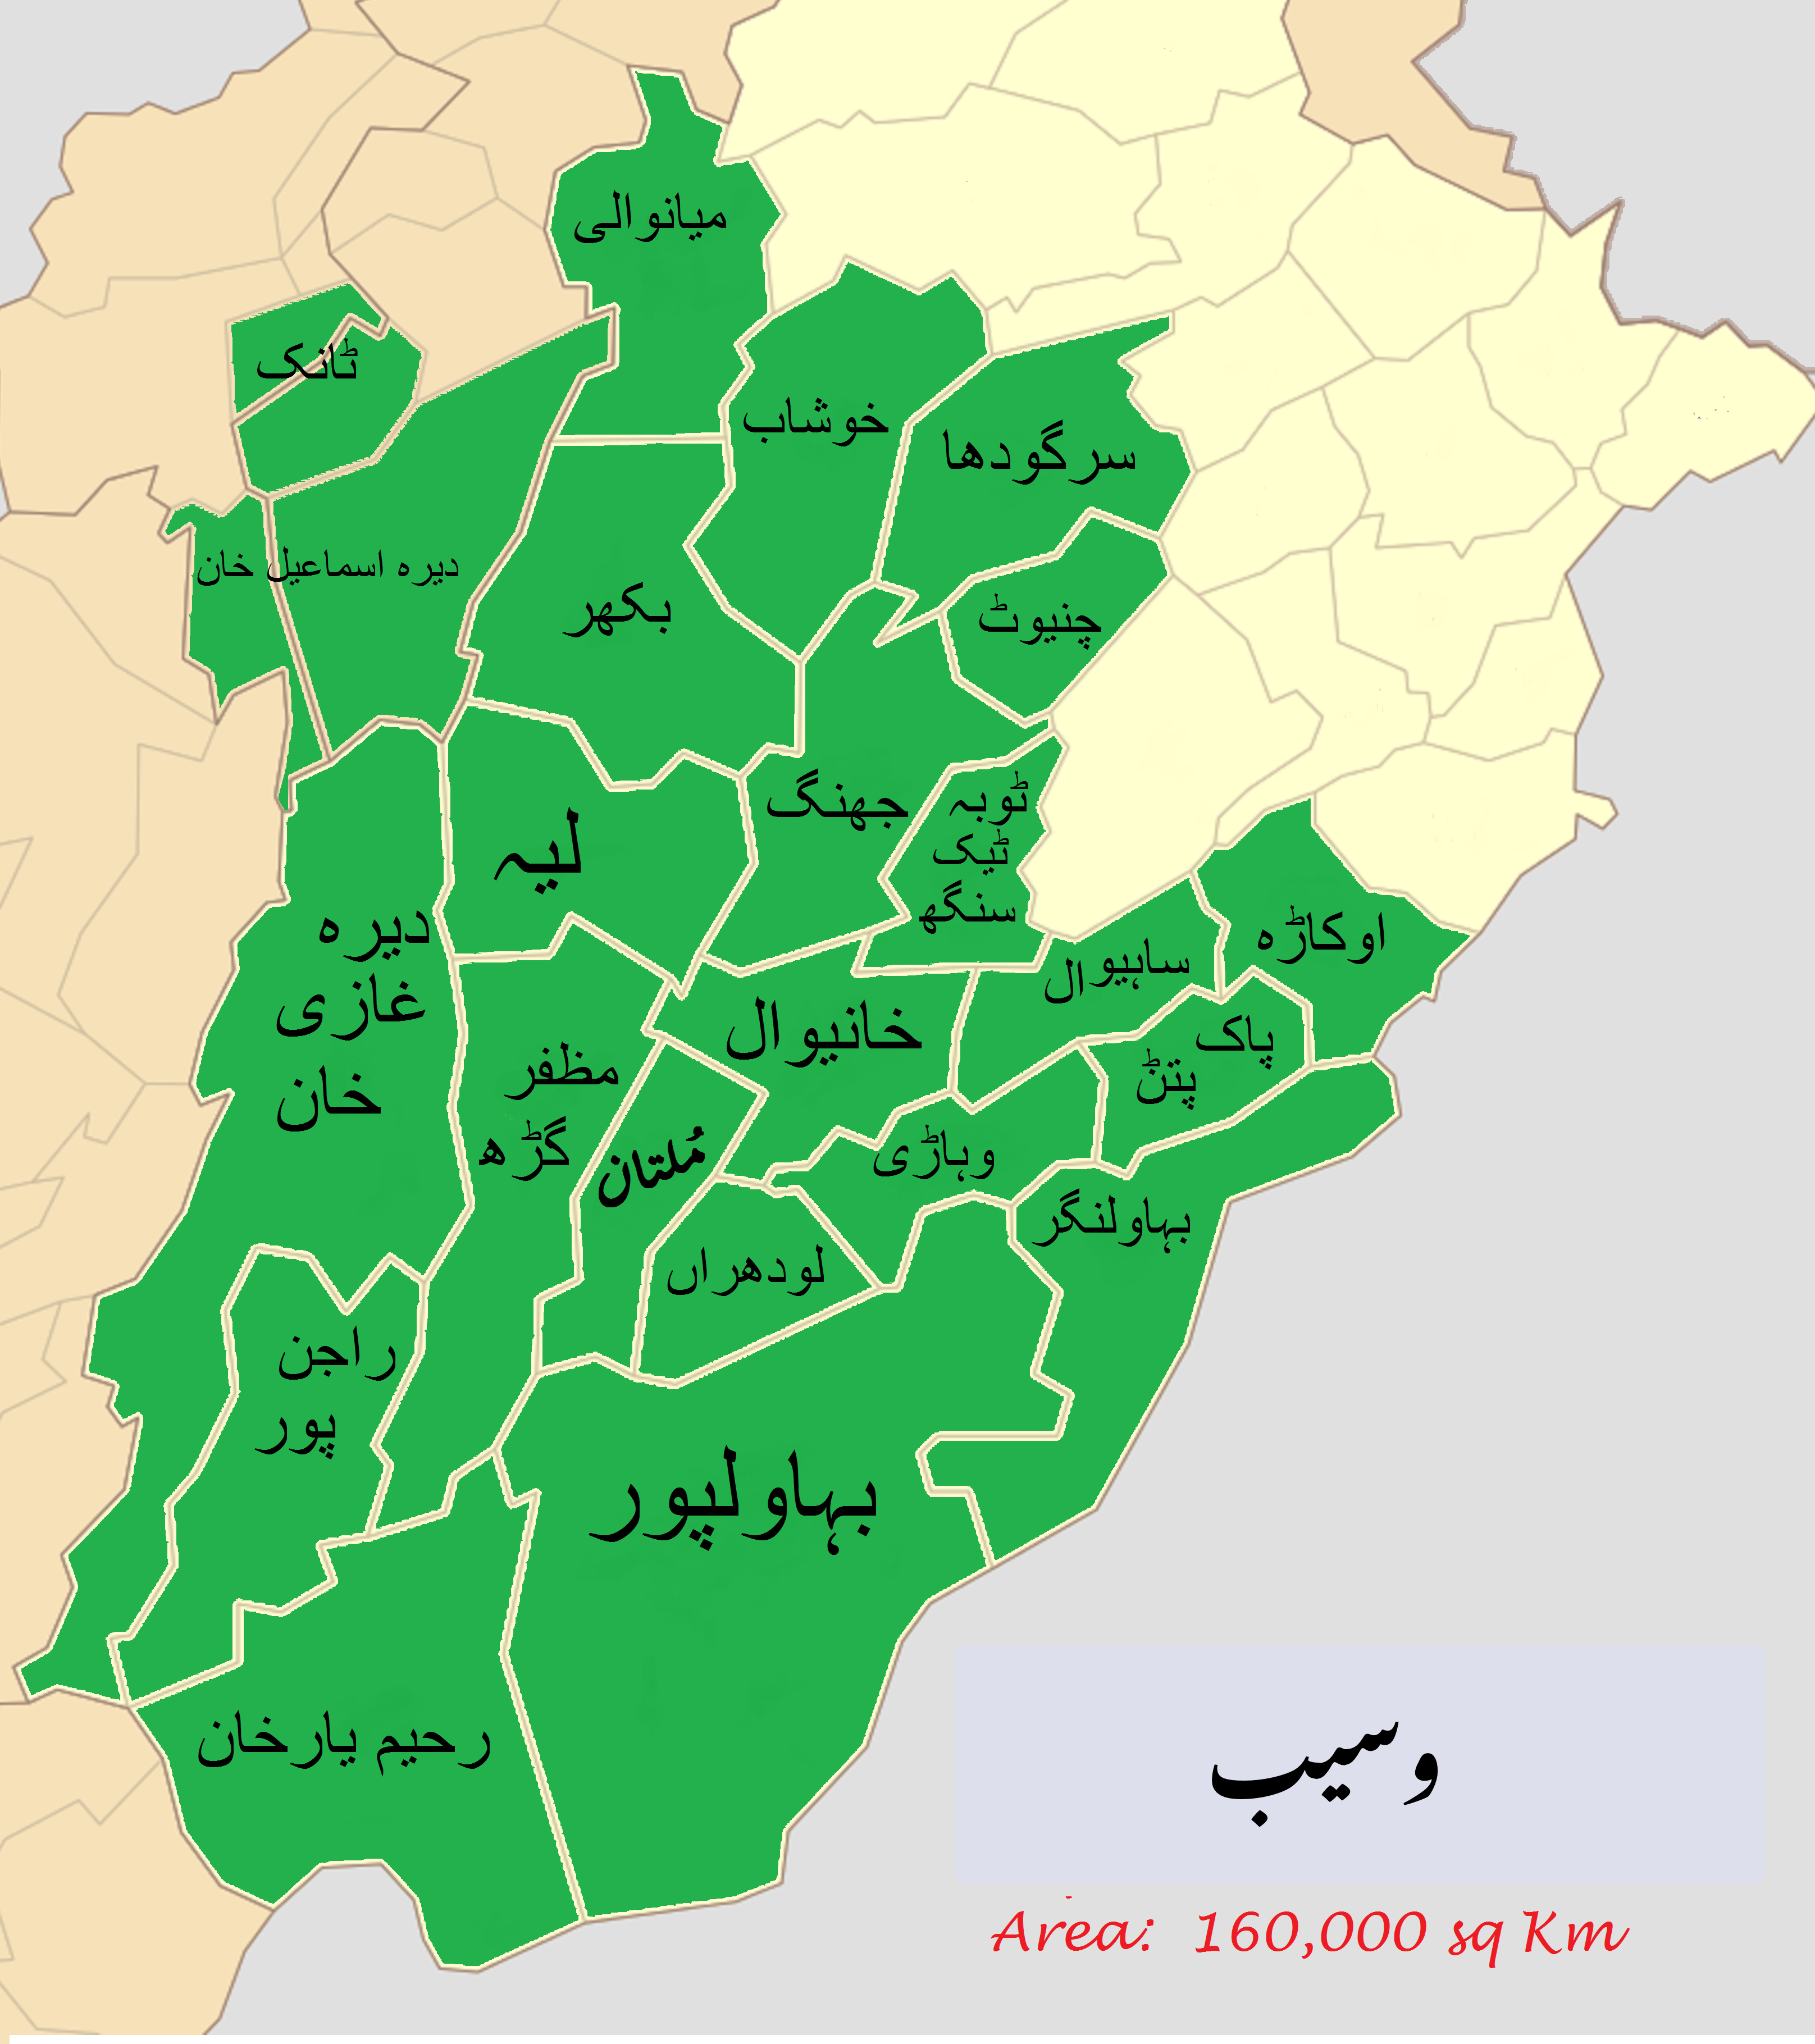 Map of Saraiki region